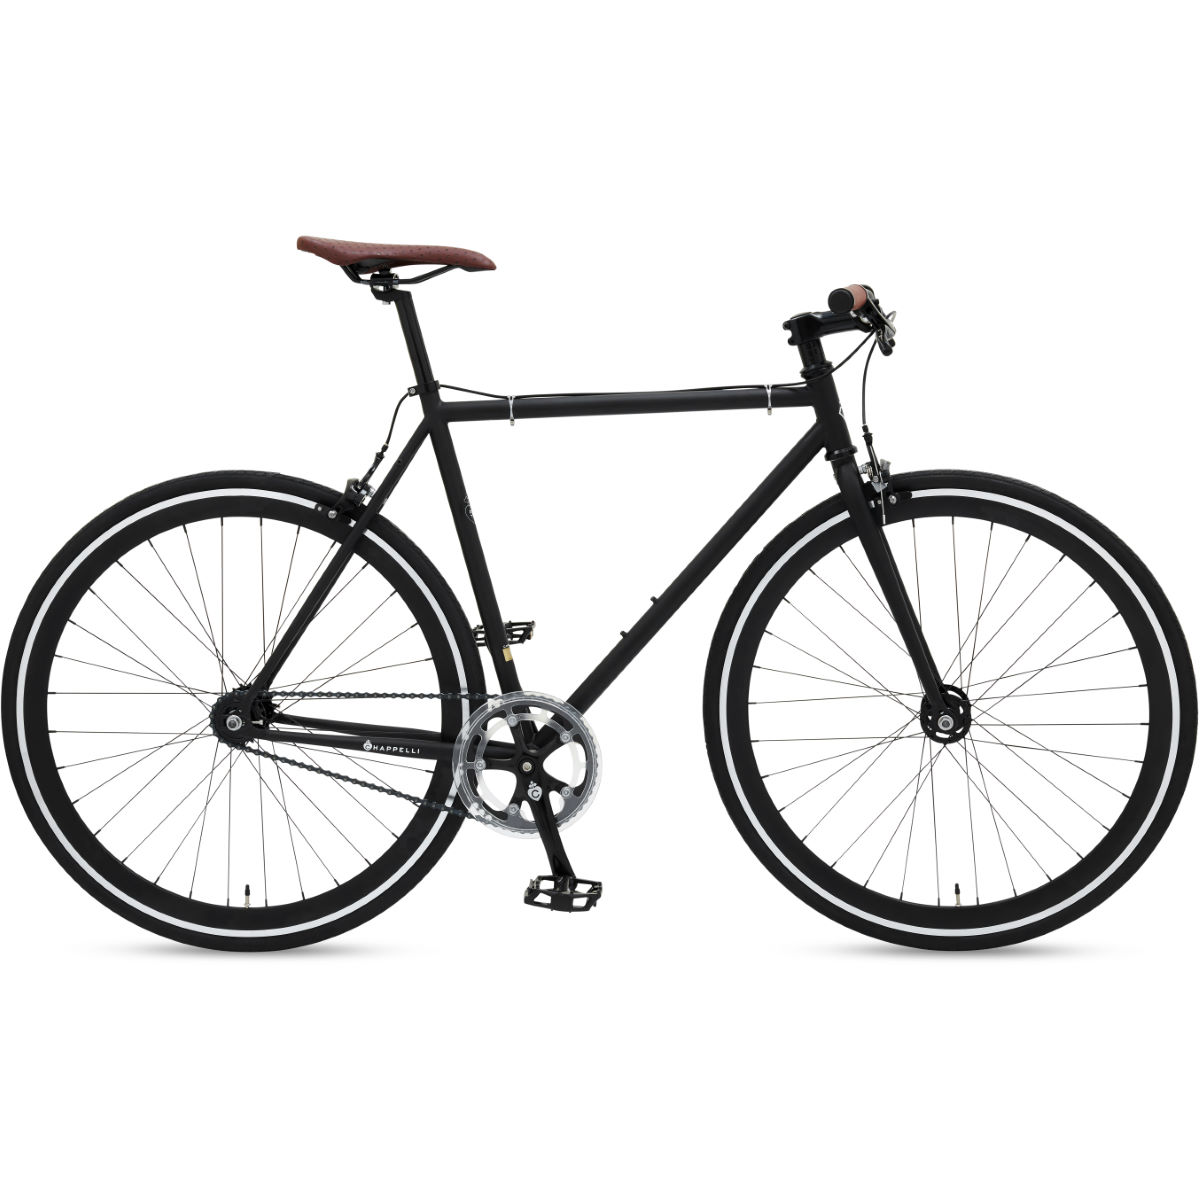 Image of Chappelli Modern Single Speed Bike (2017) Single Speeds